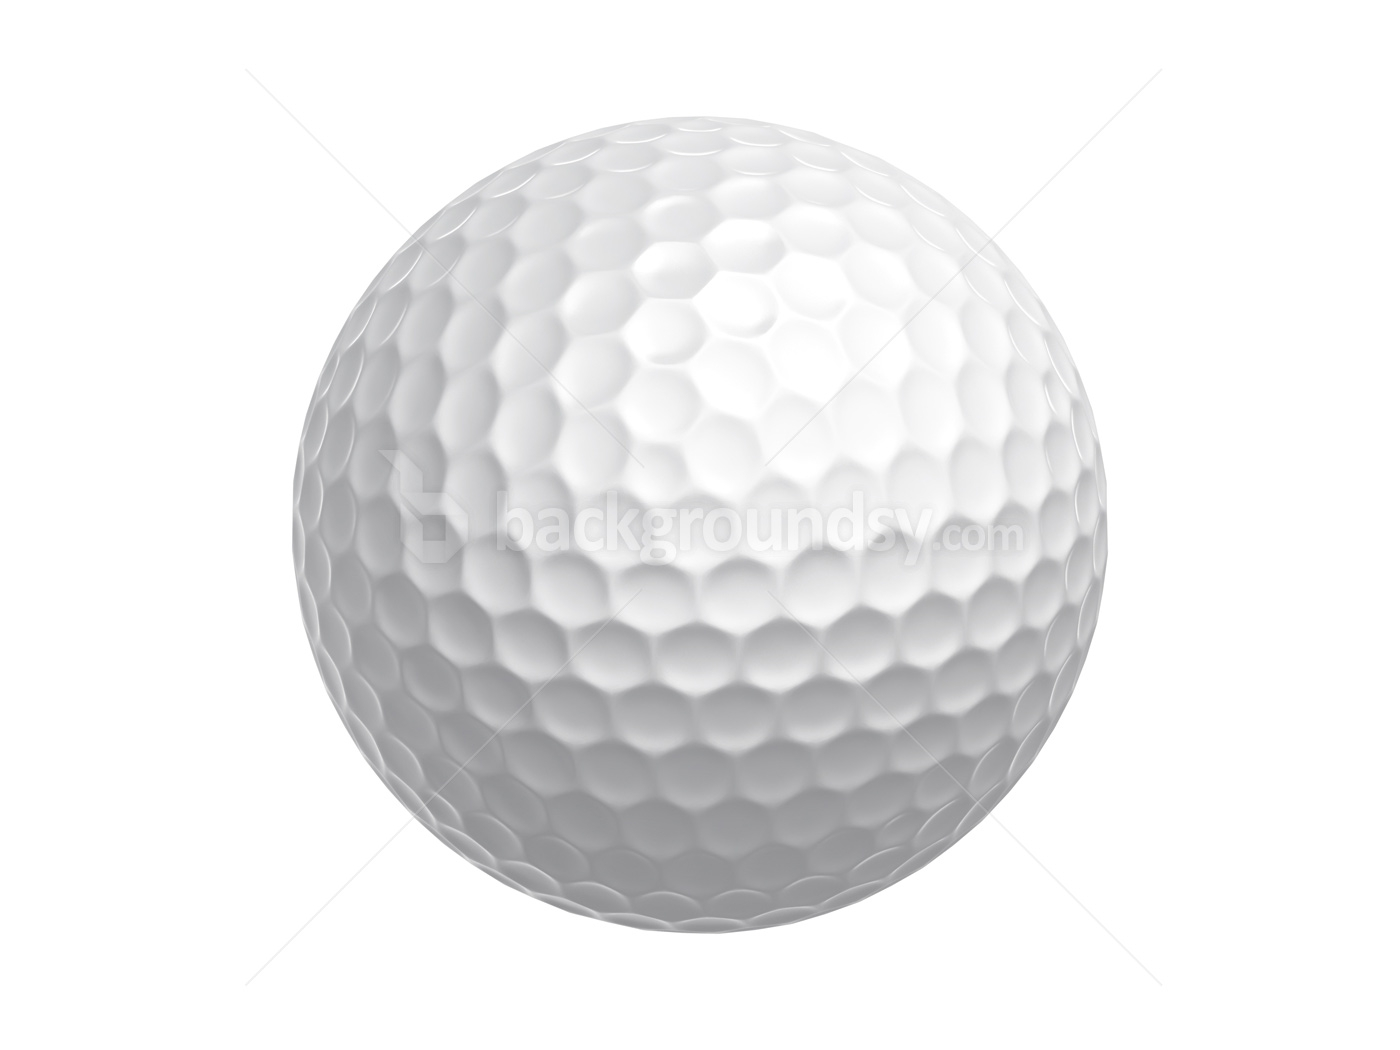 Golf ball clipart 13 - Golf Ball Clip Art